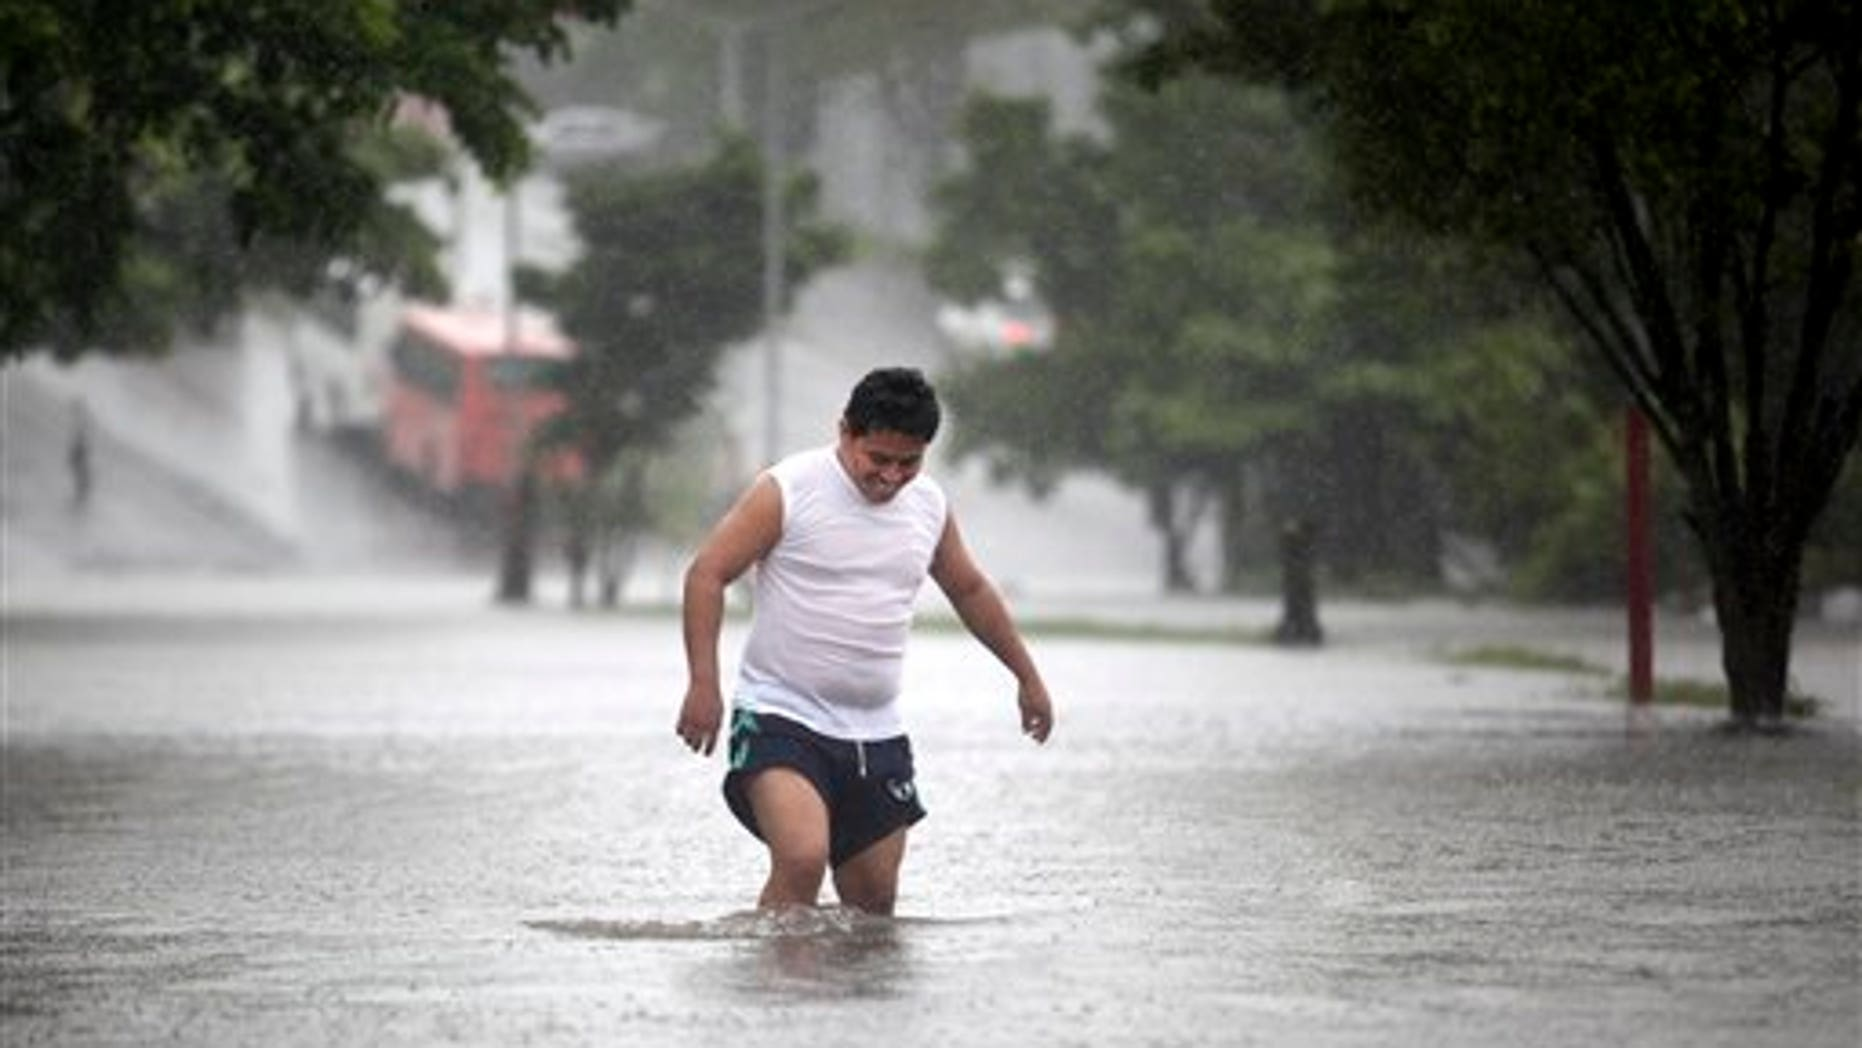 A man walks through a flooded street during heavy rains caused by Tropical Storm Ingrid in the Gulf port city of Veracruz, Mexico, Friday Sept. 13., 2013. (AP Photo/Felix Marquez)